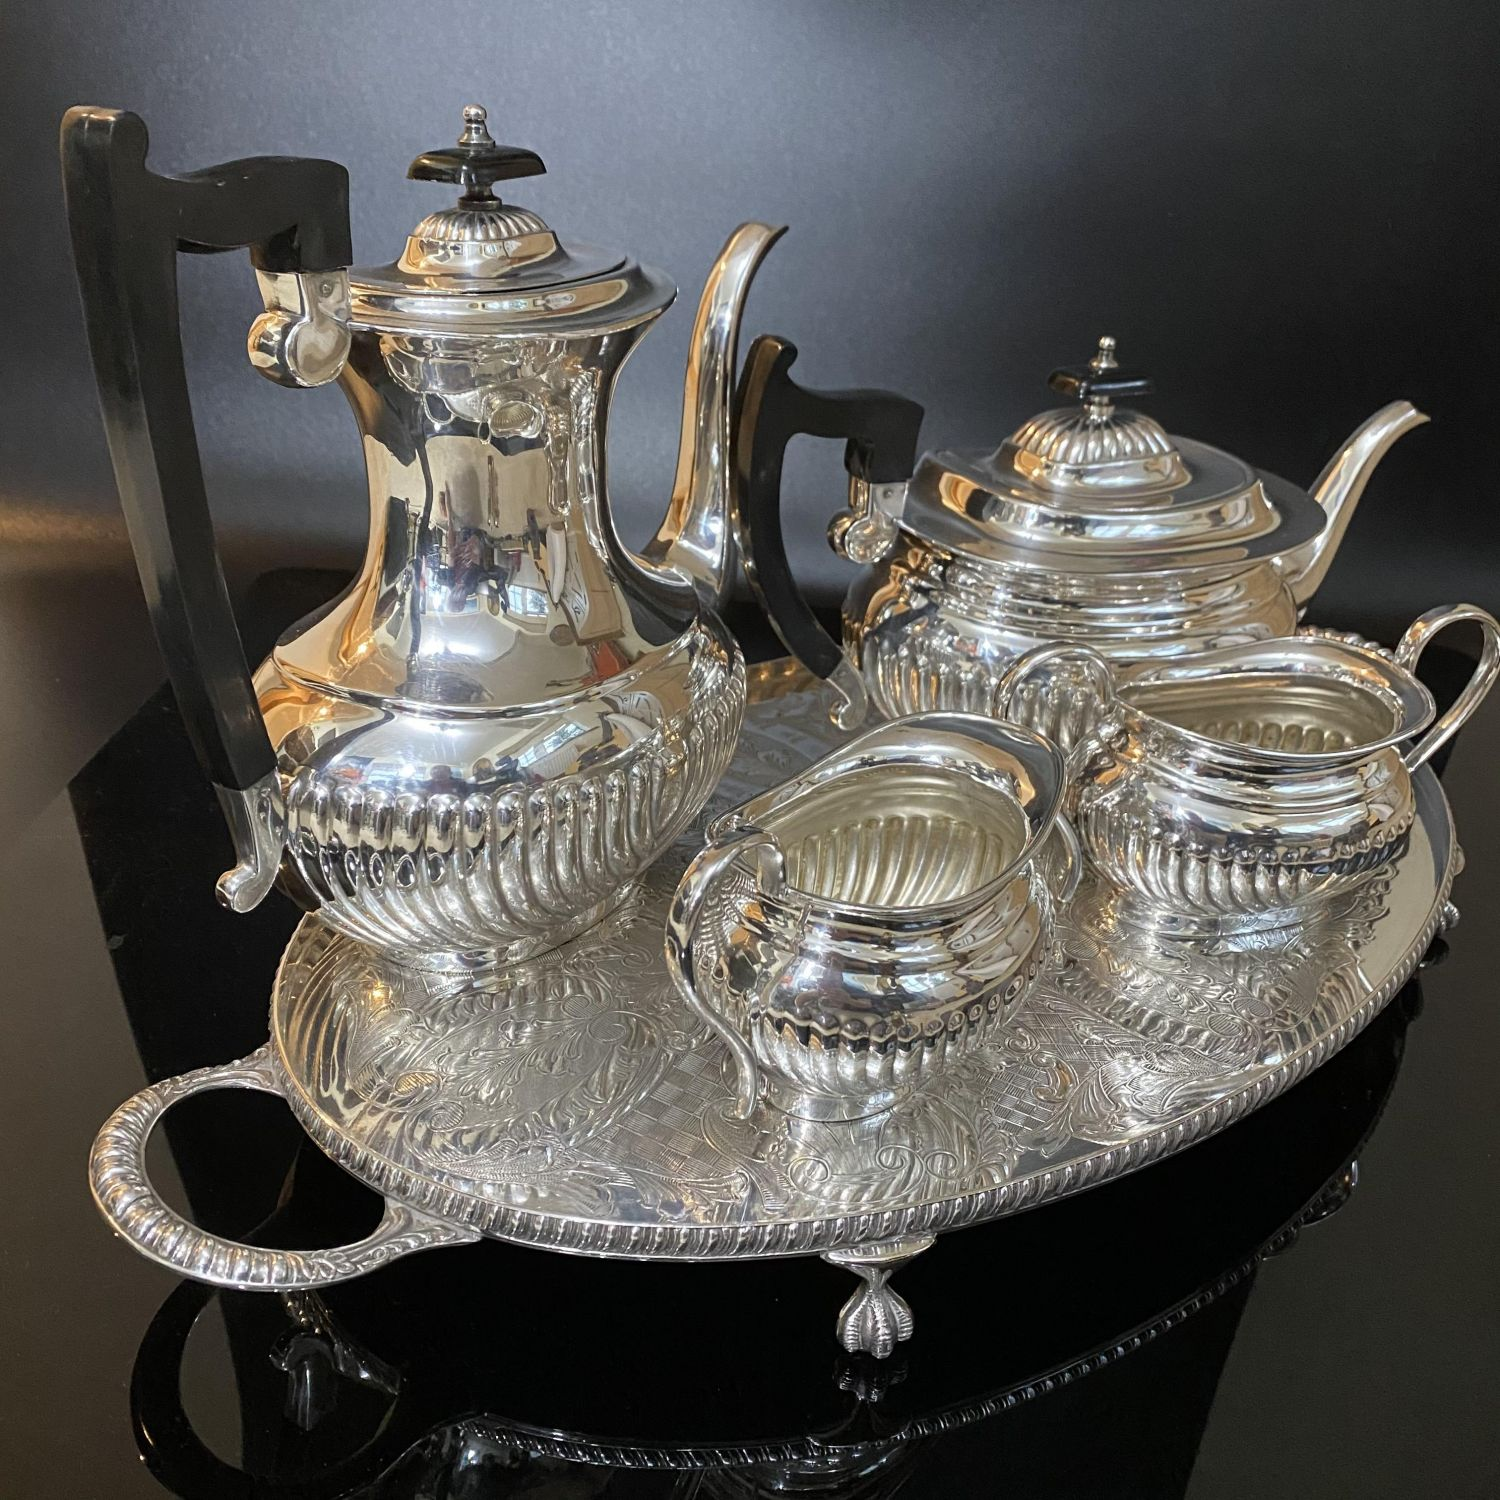 Viners Silver Plated Five Piece Tea And Coffee Service On A Tray Antique Silver Plate Hemswell Antique Centres